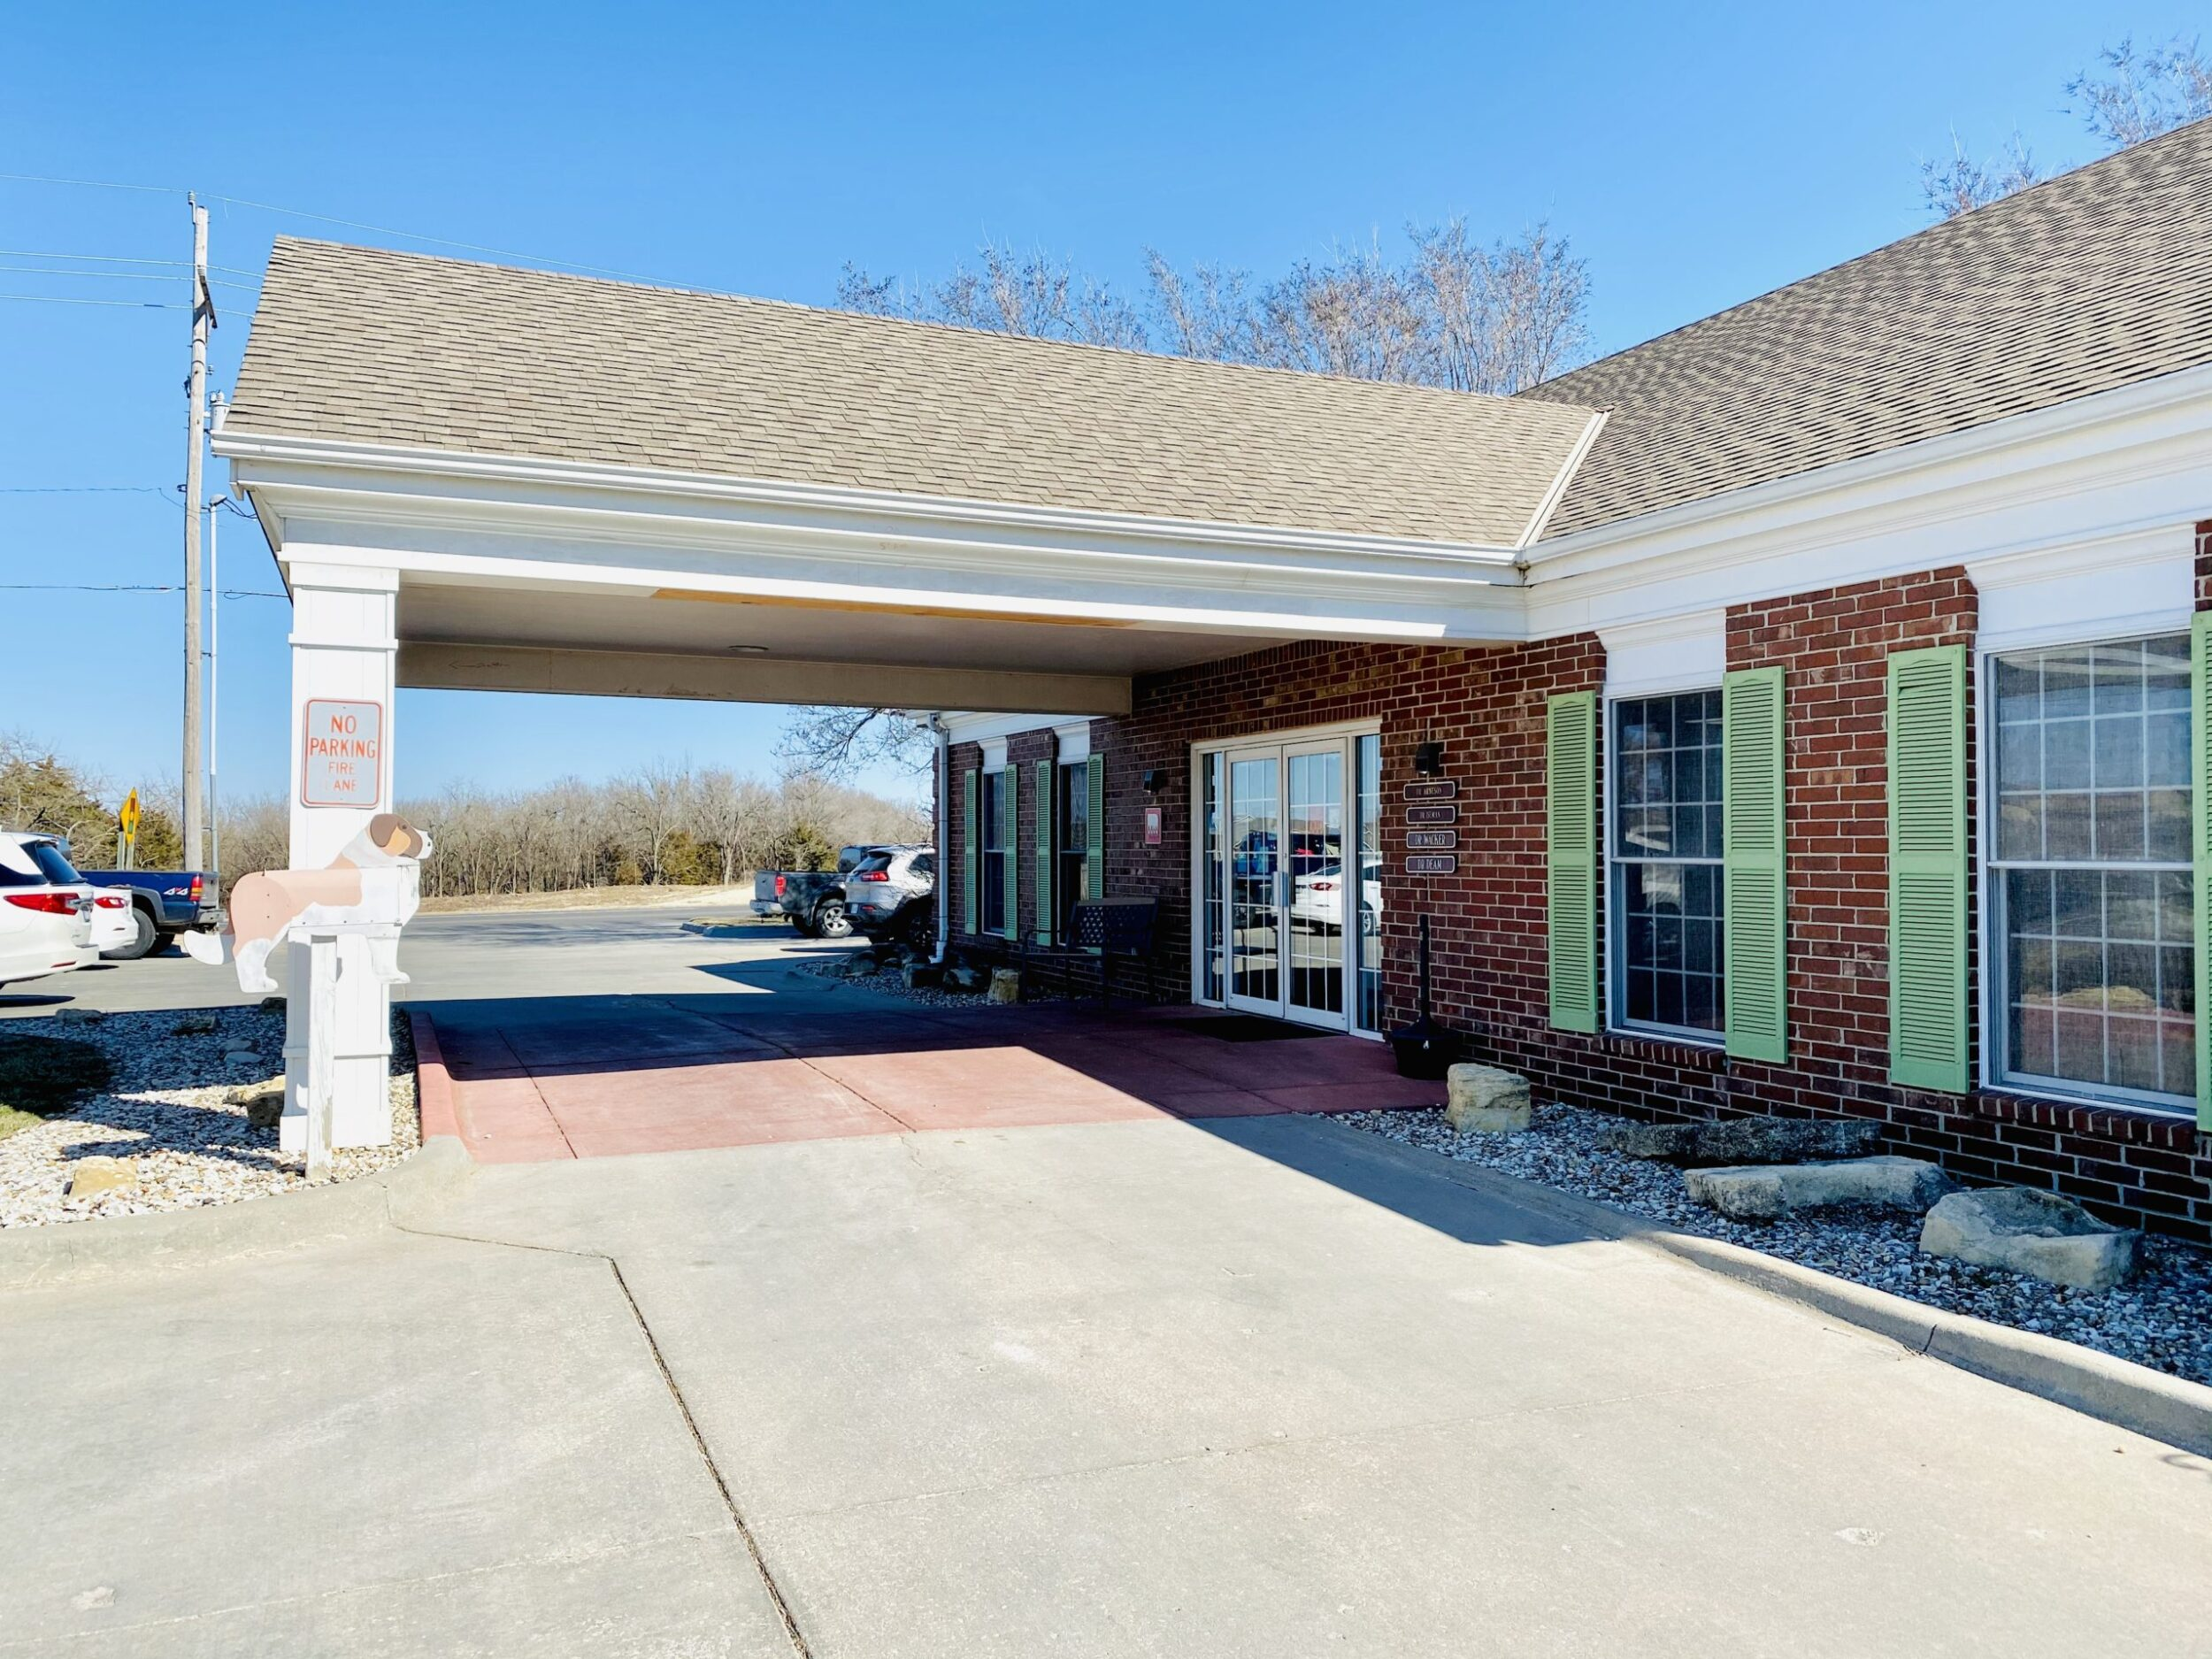 Our main entrance lies under the car shelter directly in the center of our building. The double doors are our main entrance.